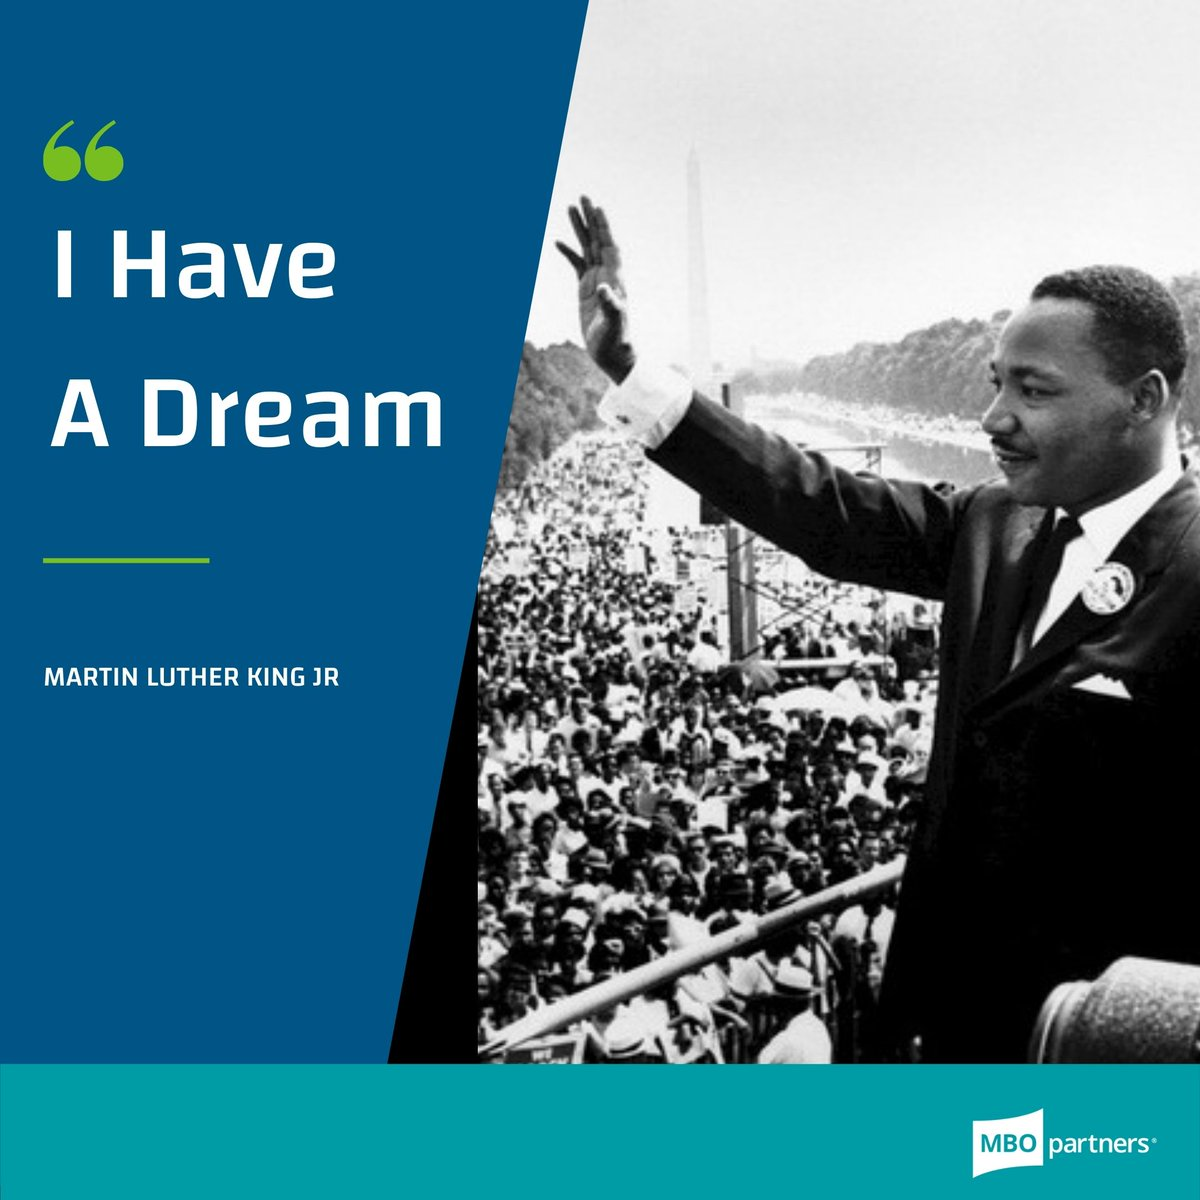 "Here at MBO, we remember the legacy of #MartinLutherKingJr and his inspirational words, spoken on the steps of the Lincoln Memorial in 1963.  ""I still have a dream. It is a dream deeply rooted in the American dream.""  #IHaveADream"